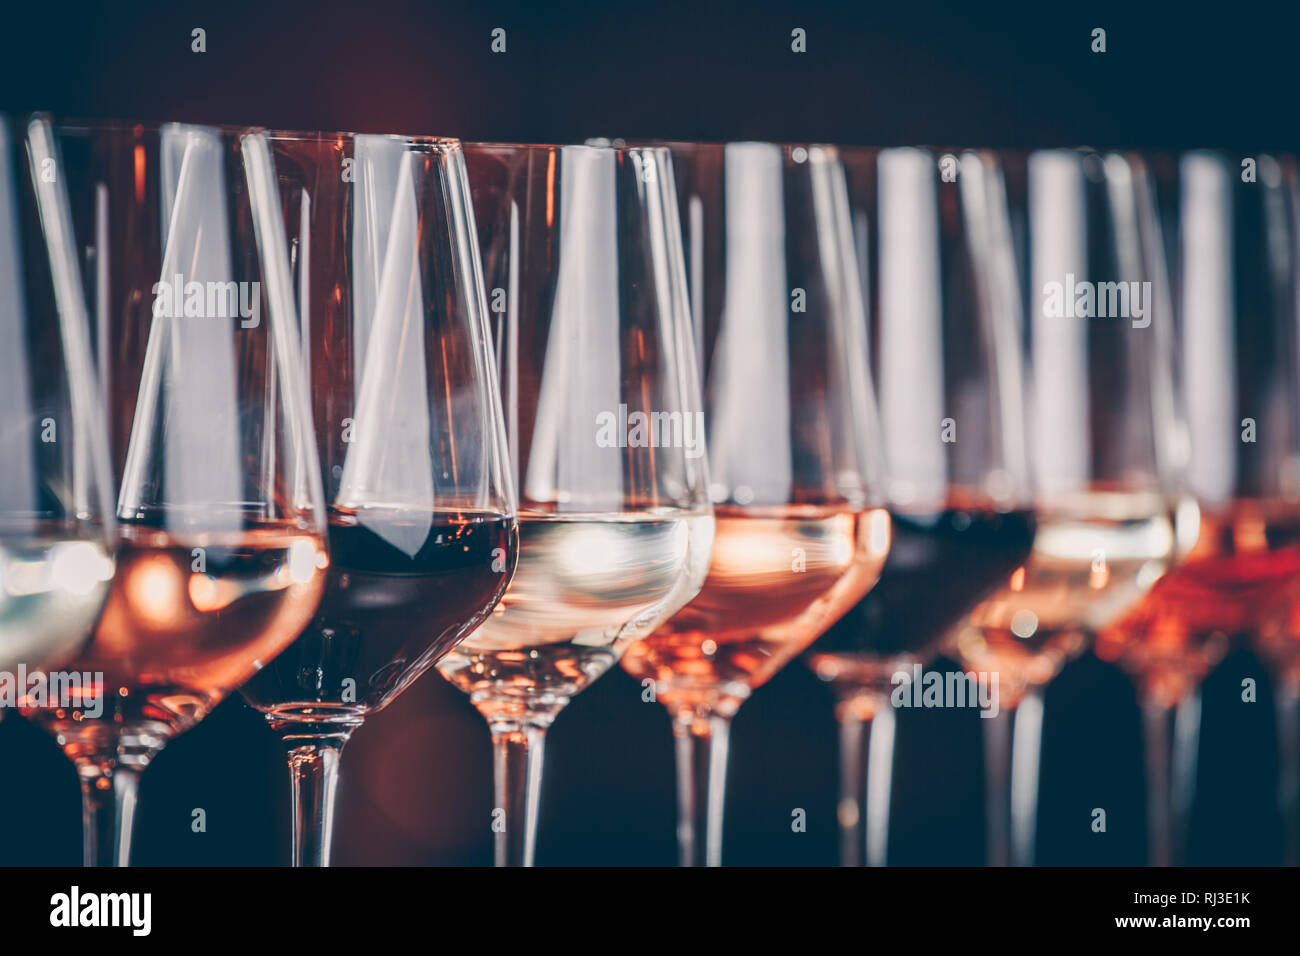 Wine glasses in a row. Buffet table celebration of wine tasting. Nightlife, celebration and entertainment concept. Horizontal, cold toned image Stock Photo